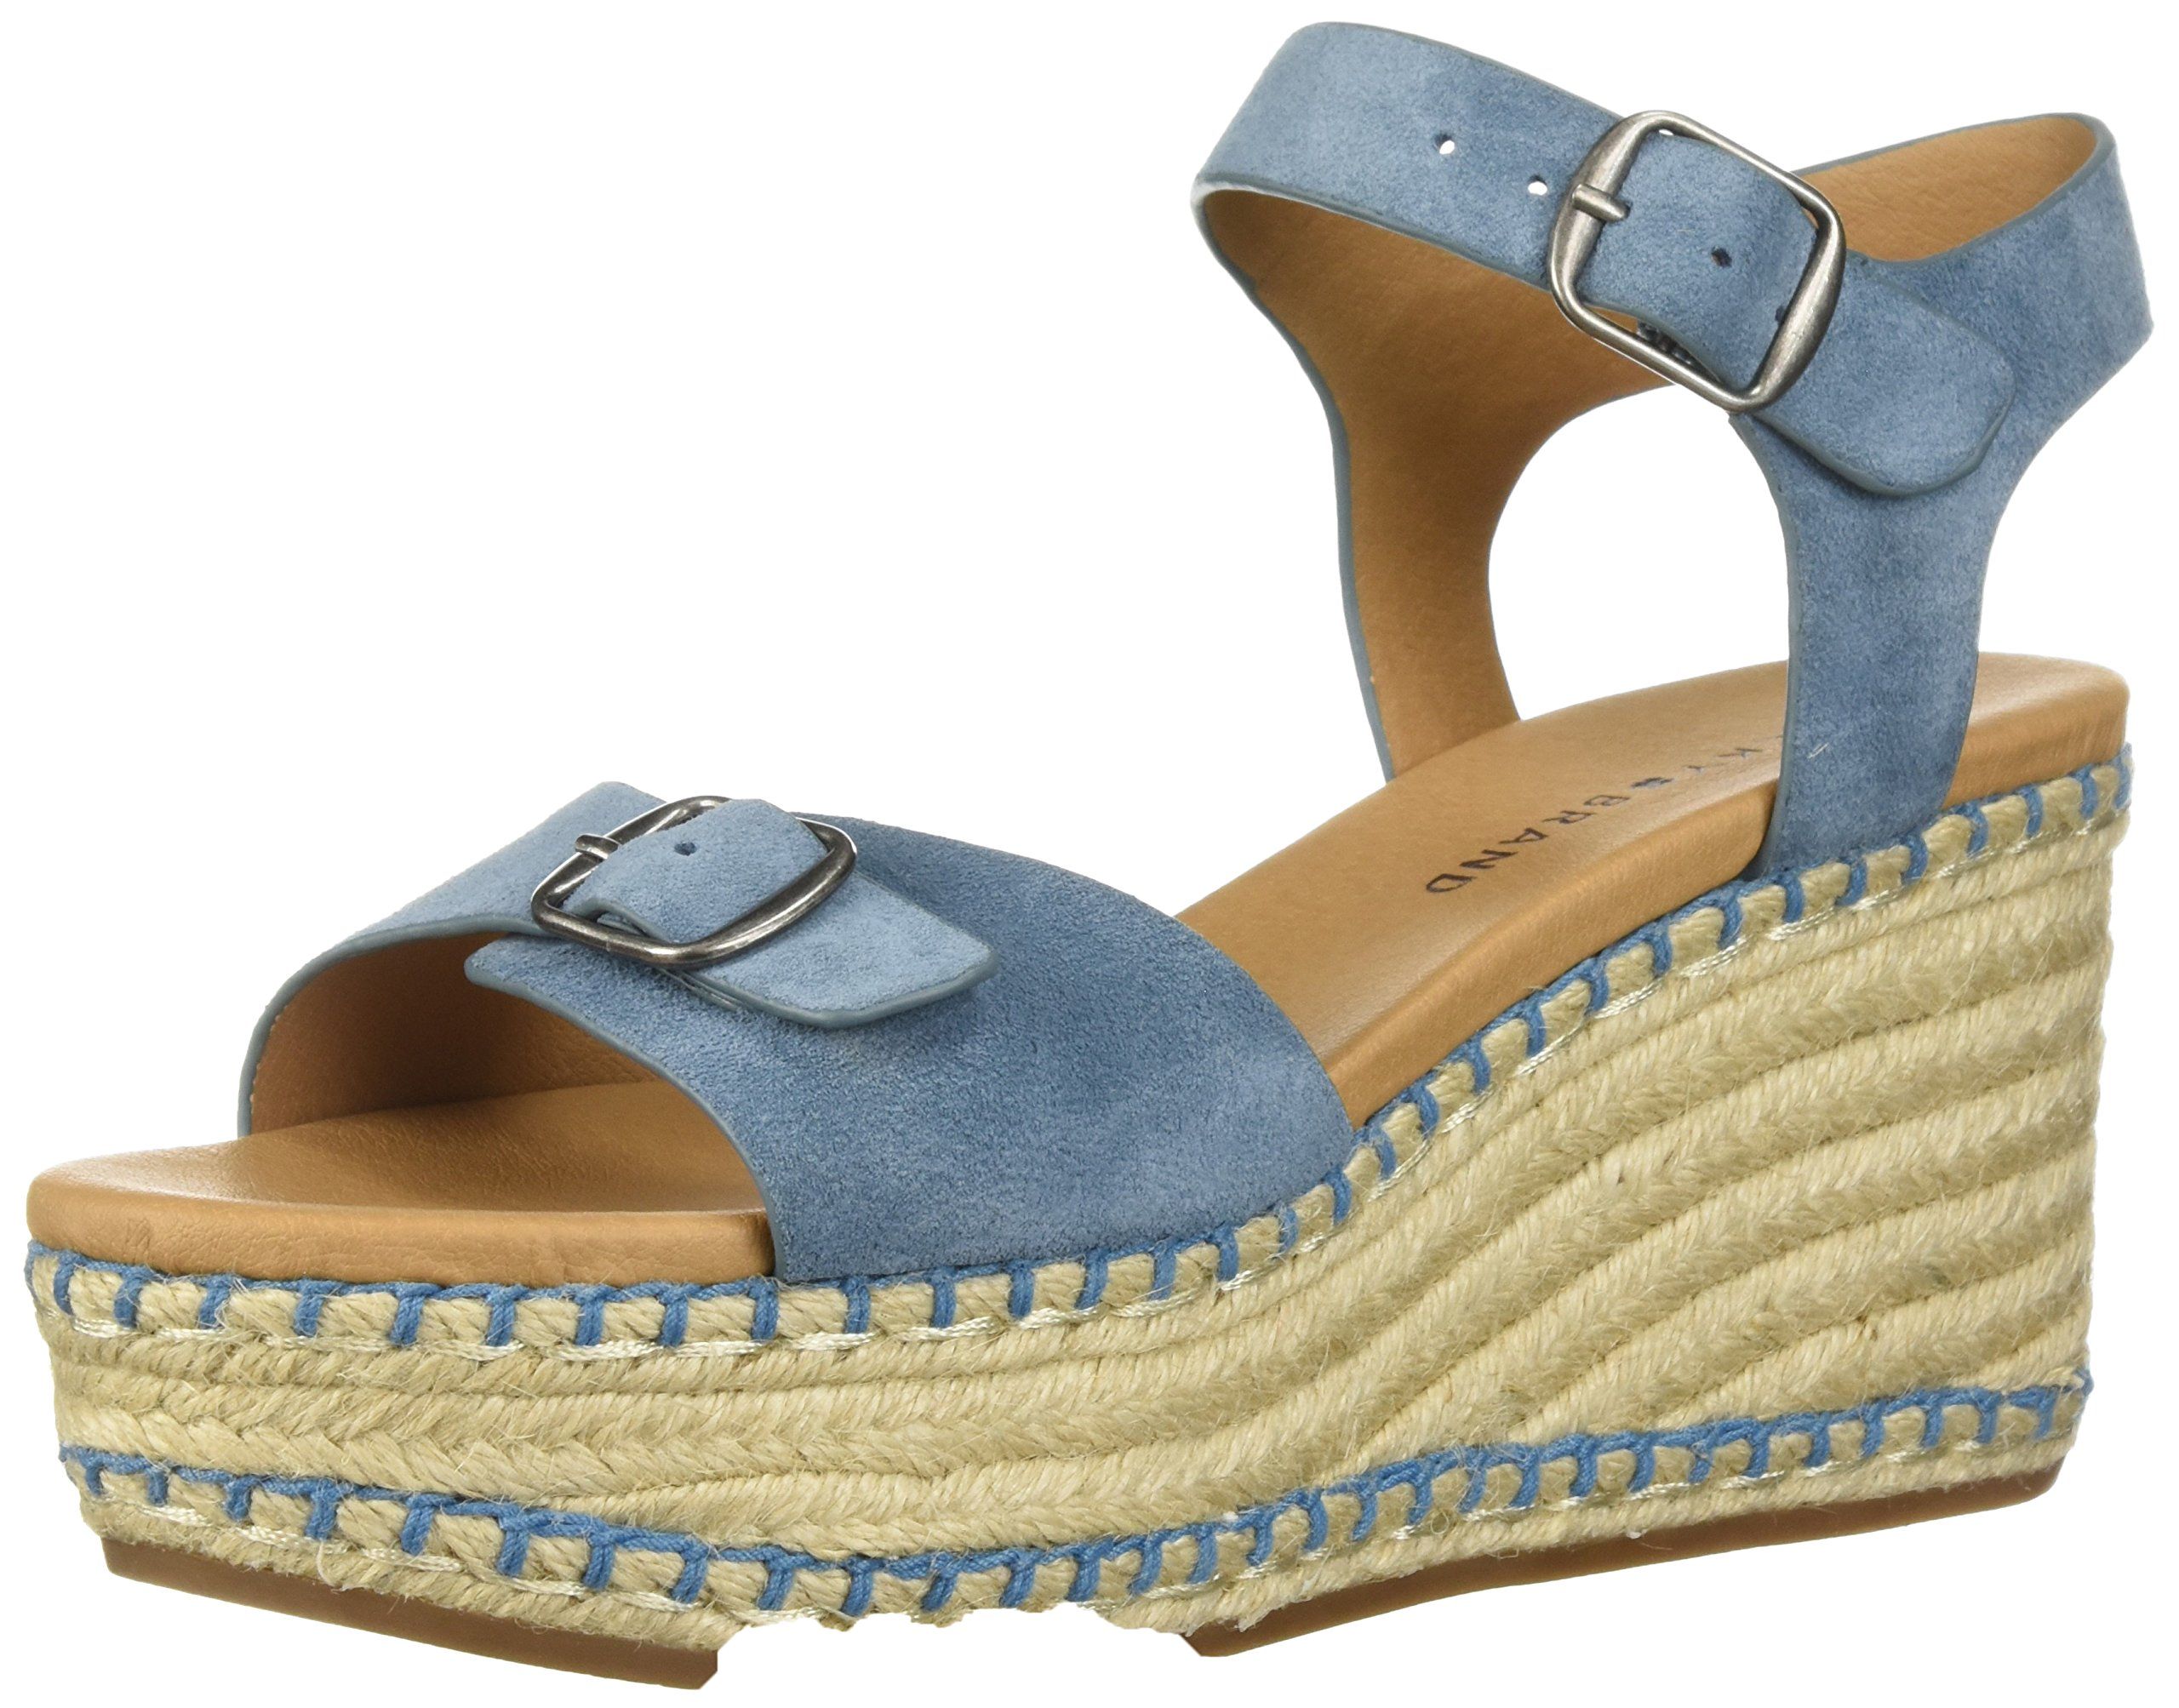 Lucky Brand Women's NAVEAH3 Espadrille Wedge Sandal, Faded Denim, 8 M US